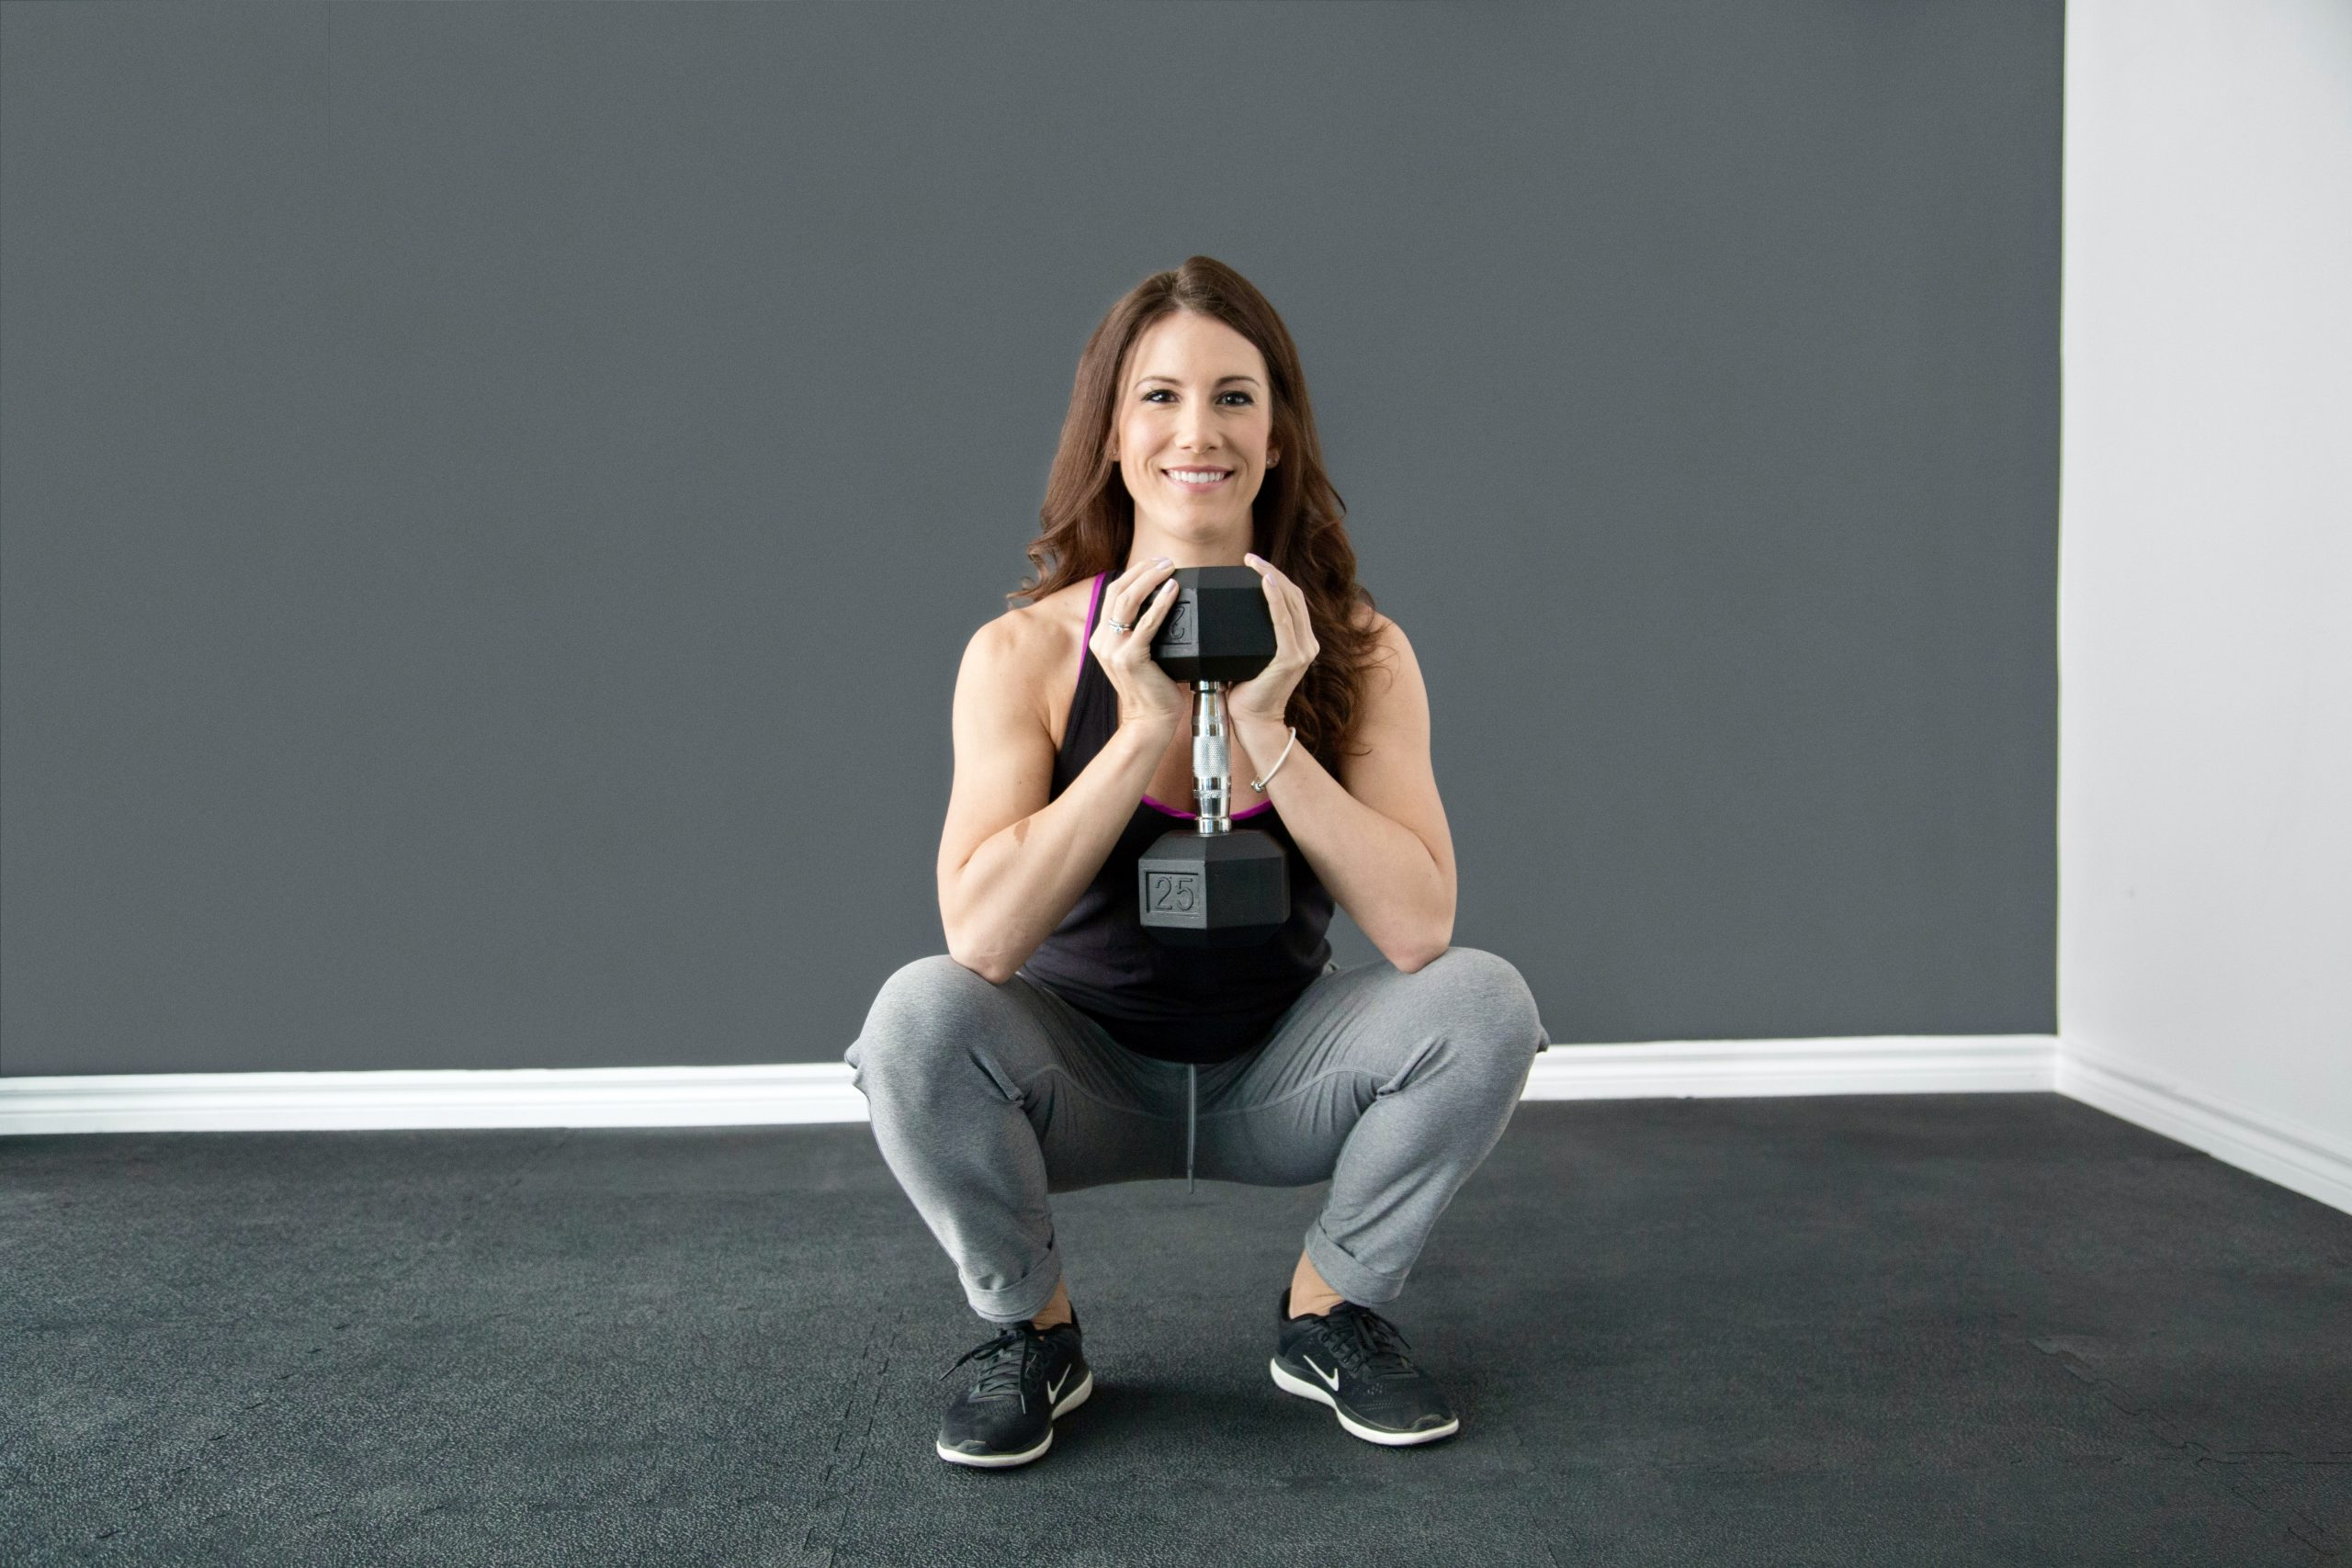 Leeds personal trainer, fitness Leeds, Personal training Leeds, your house fitness